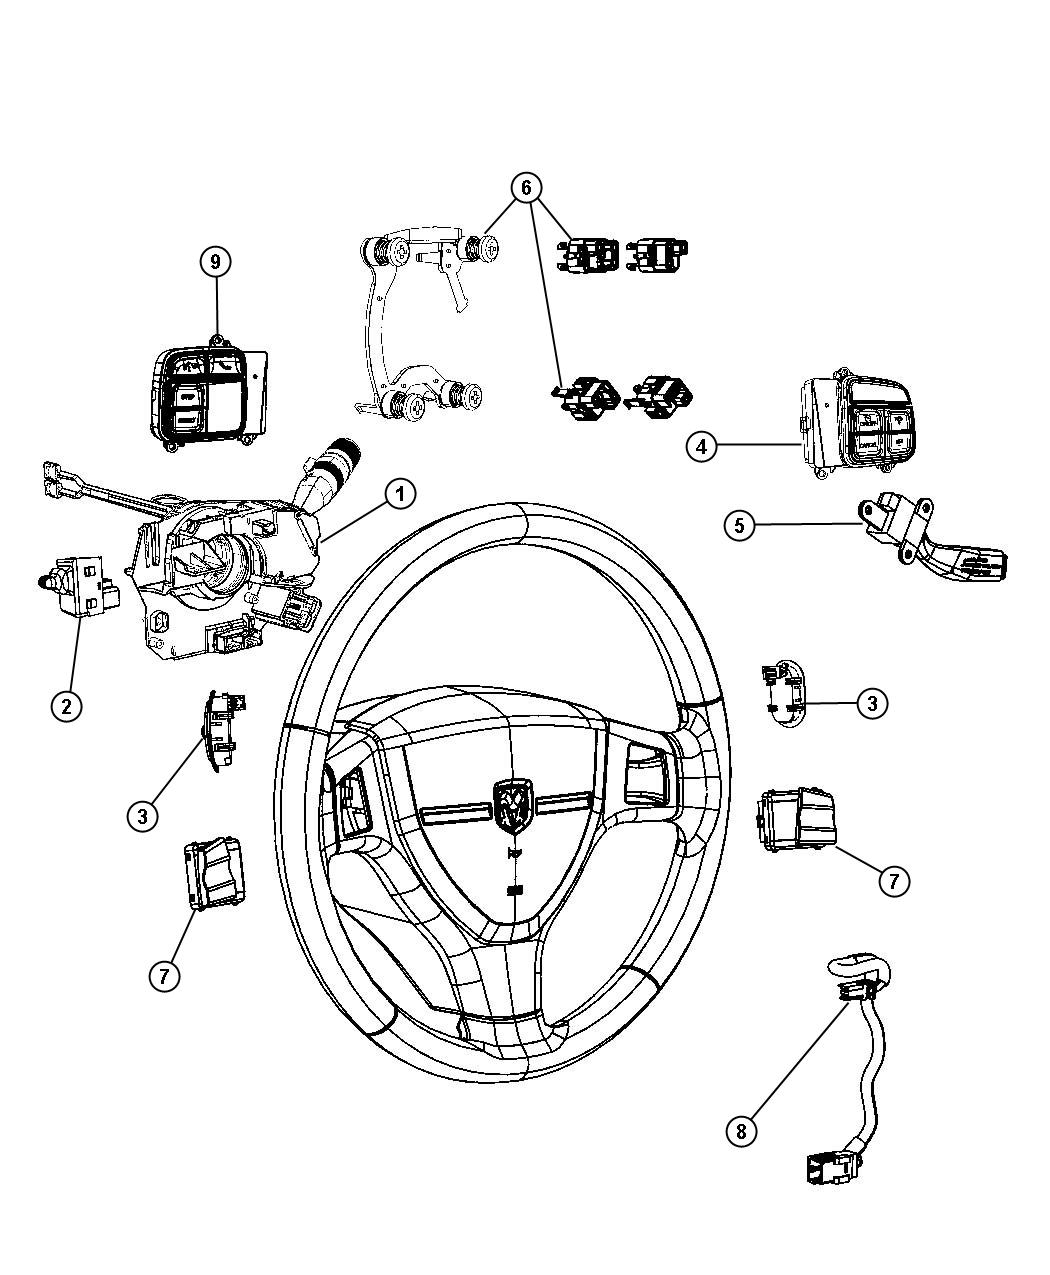 Switches Steering Column And Wheel